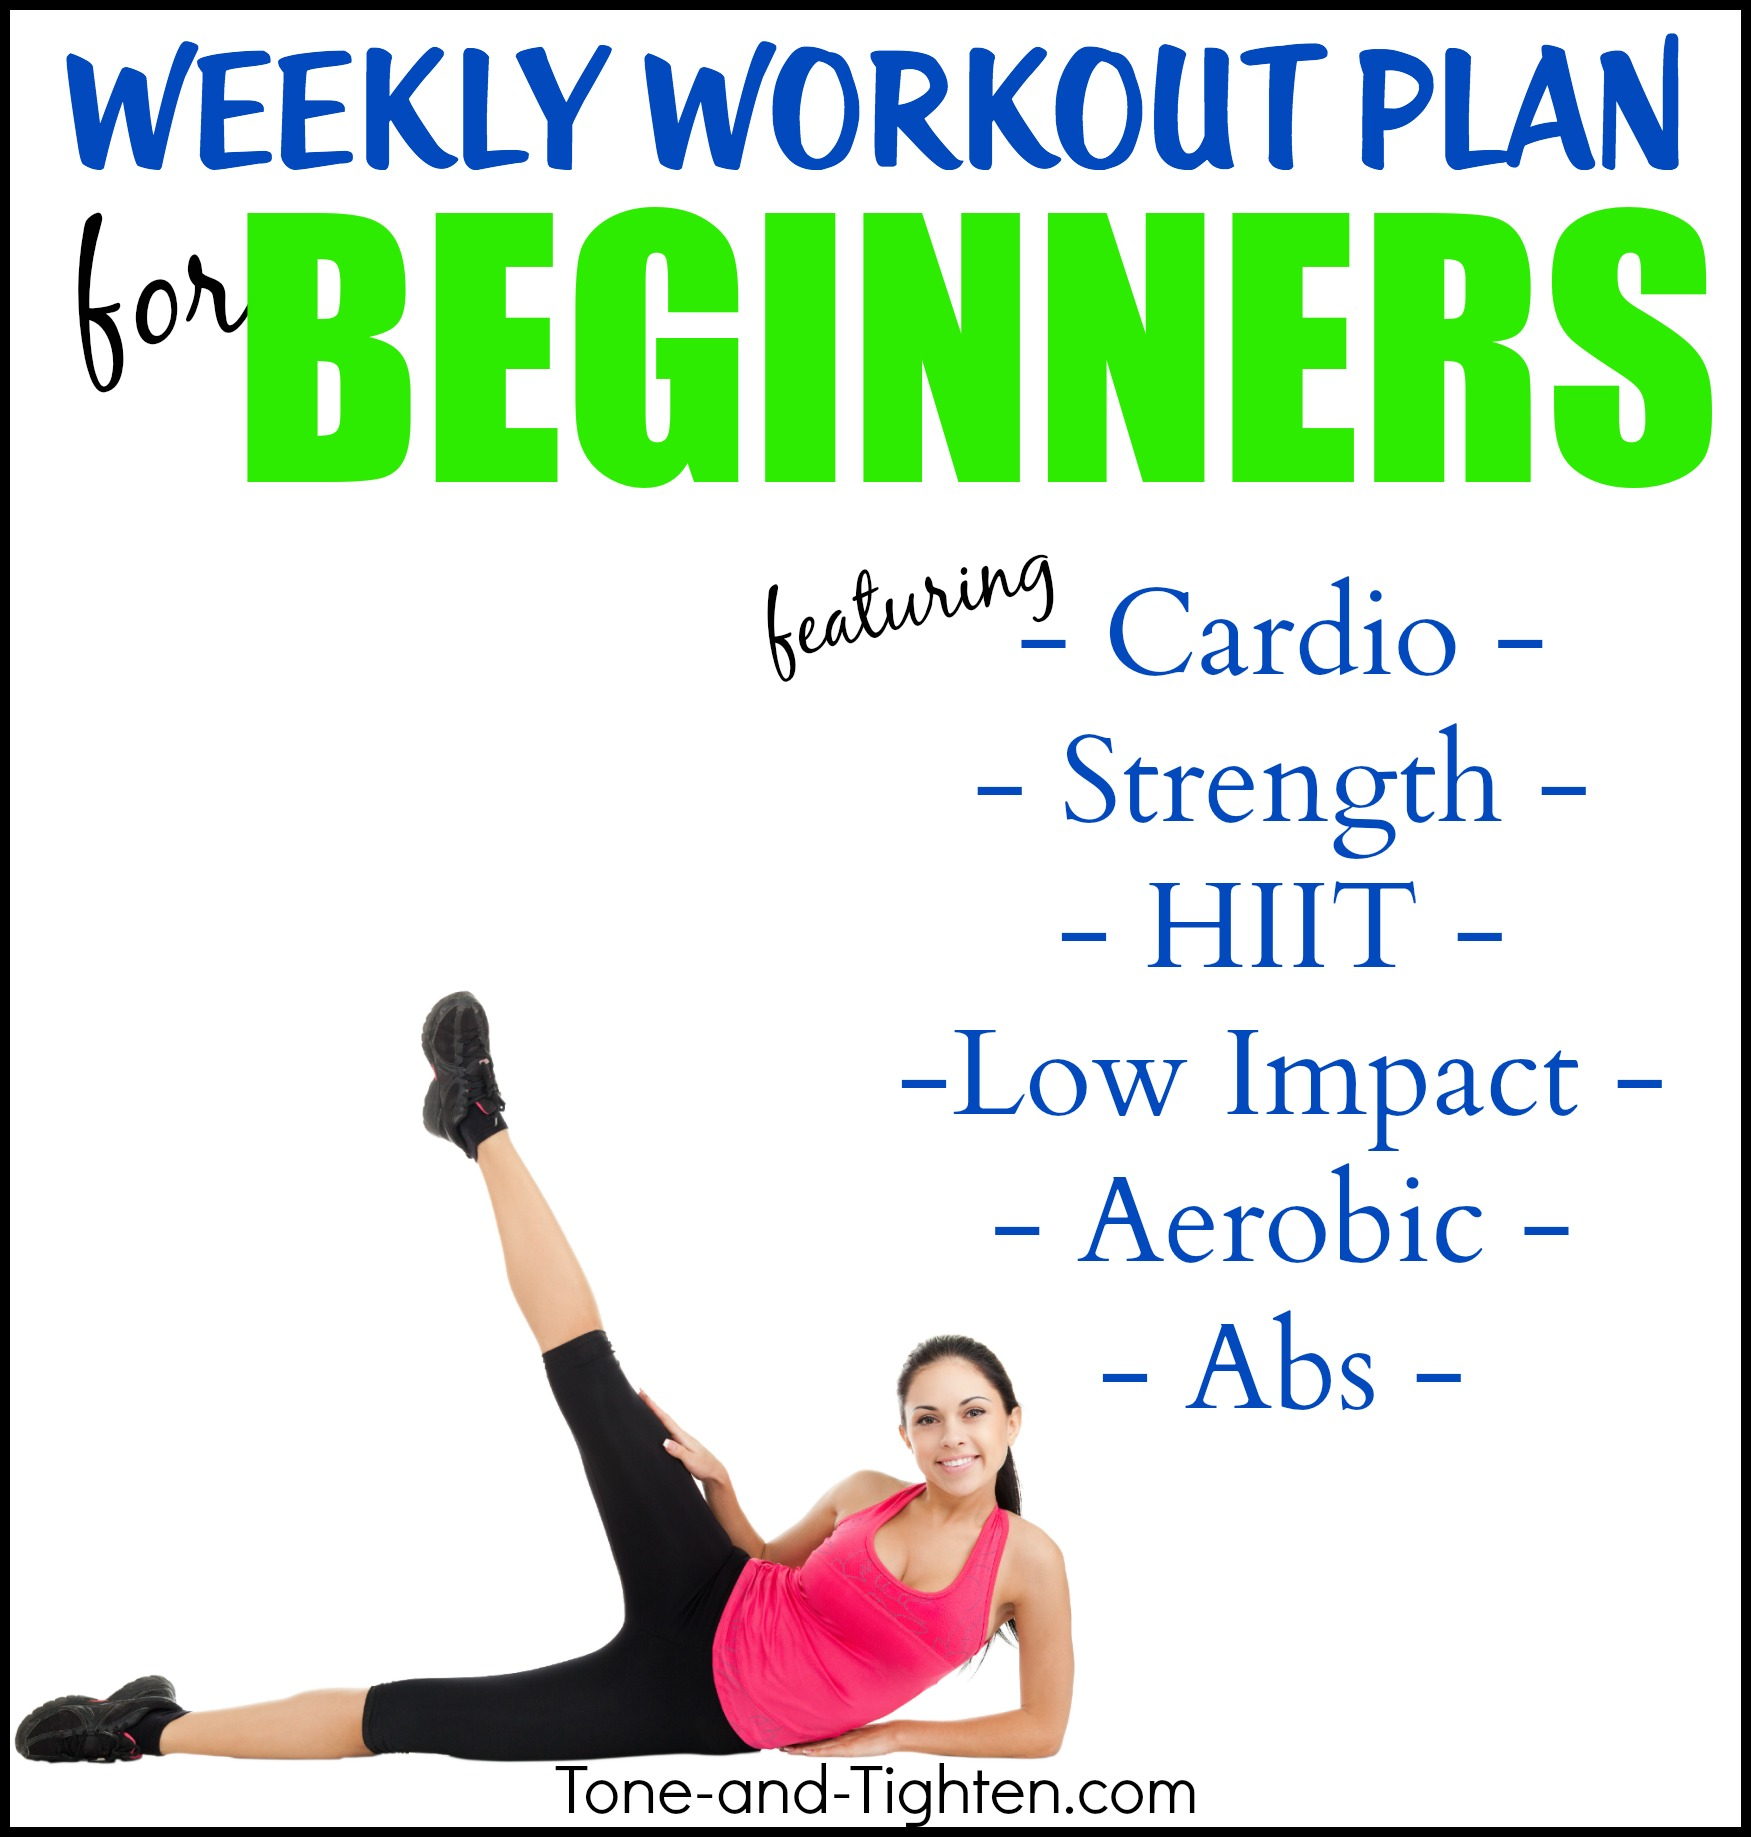 Weekly Workout Plan 5 Days Of Beginner Workouts To Tone And